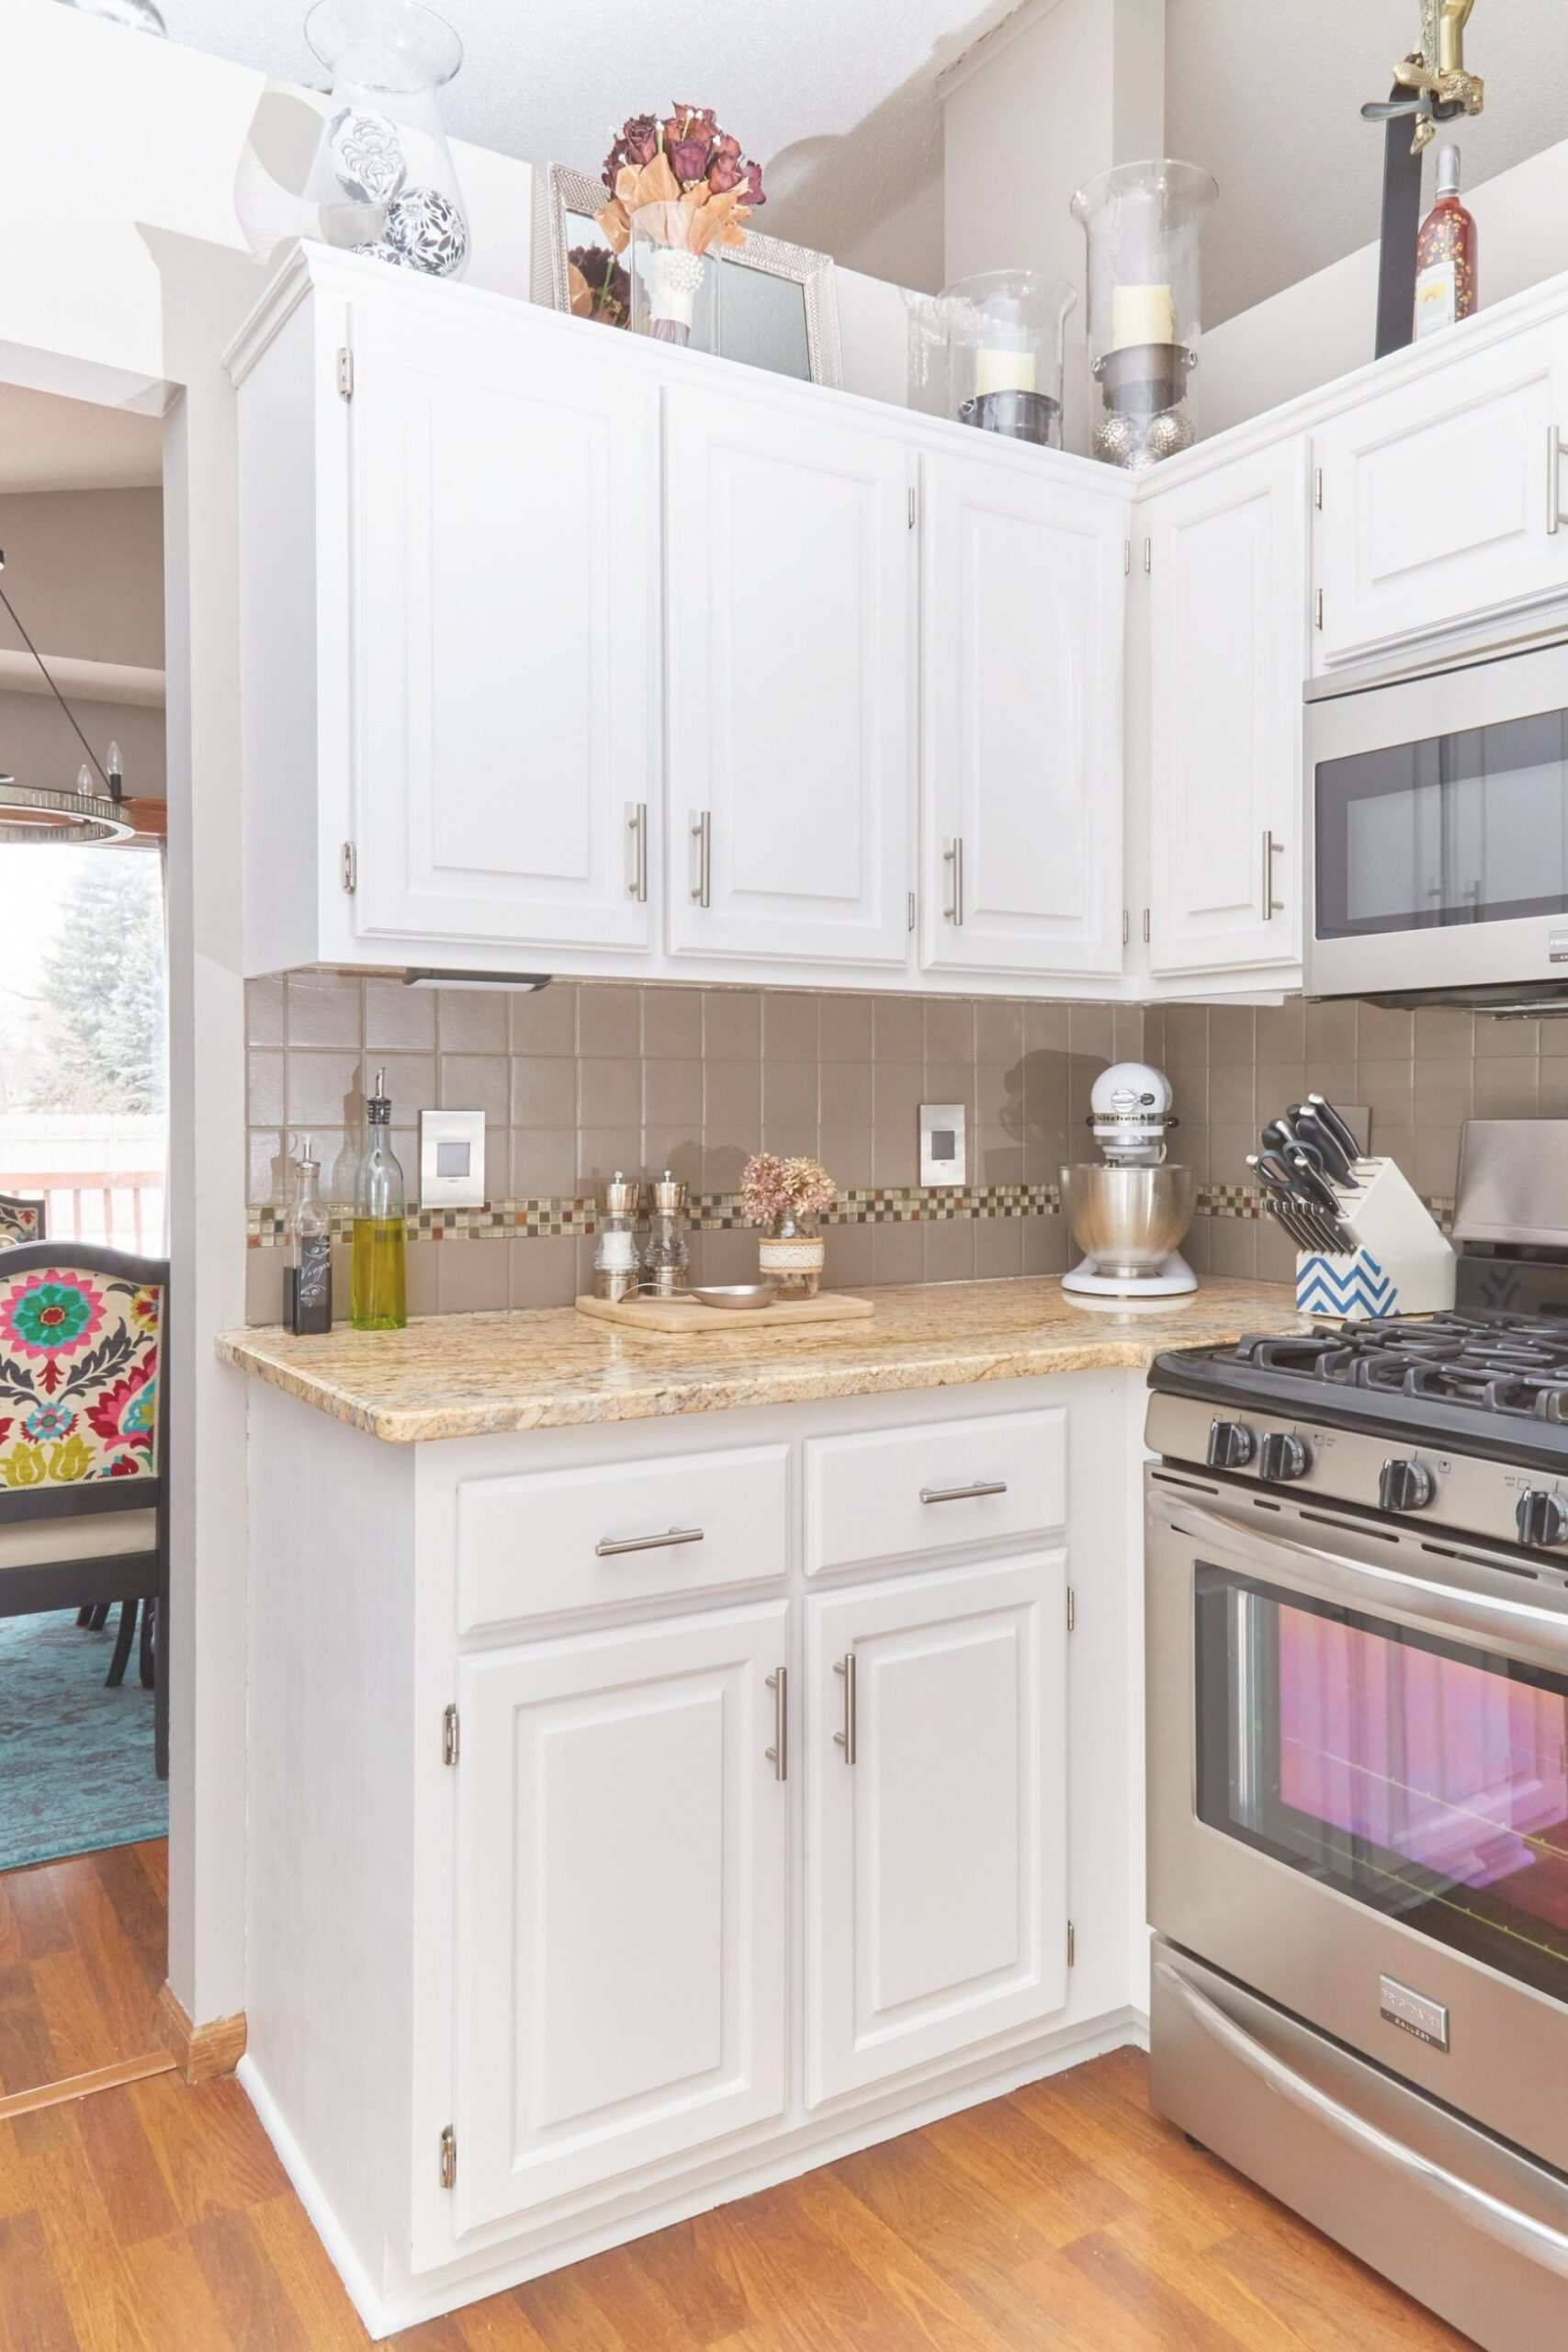 The Best Way To Paint Your Kitchen Cabinets | Kitchen pertaining to Best Way To Remodel Kitchen